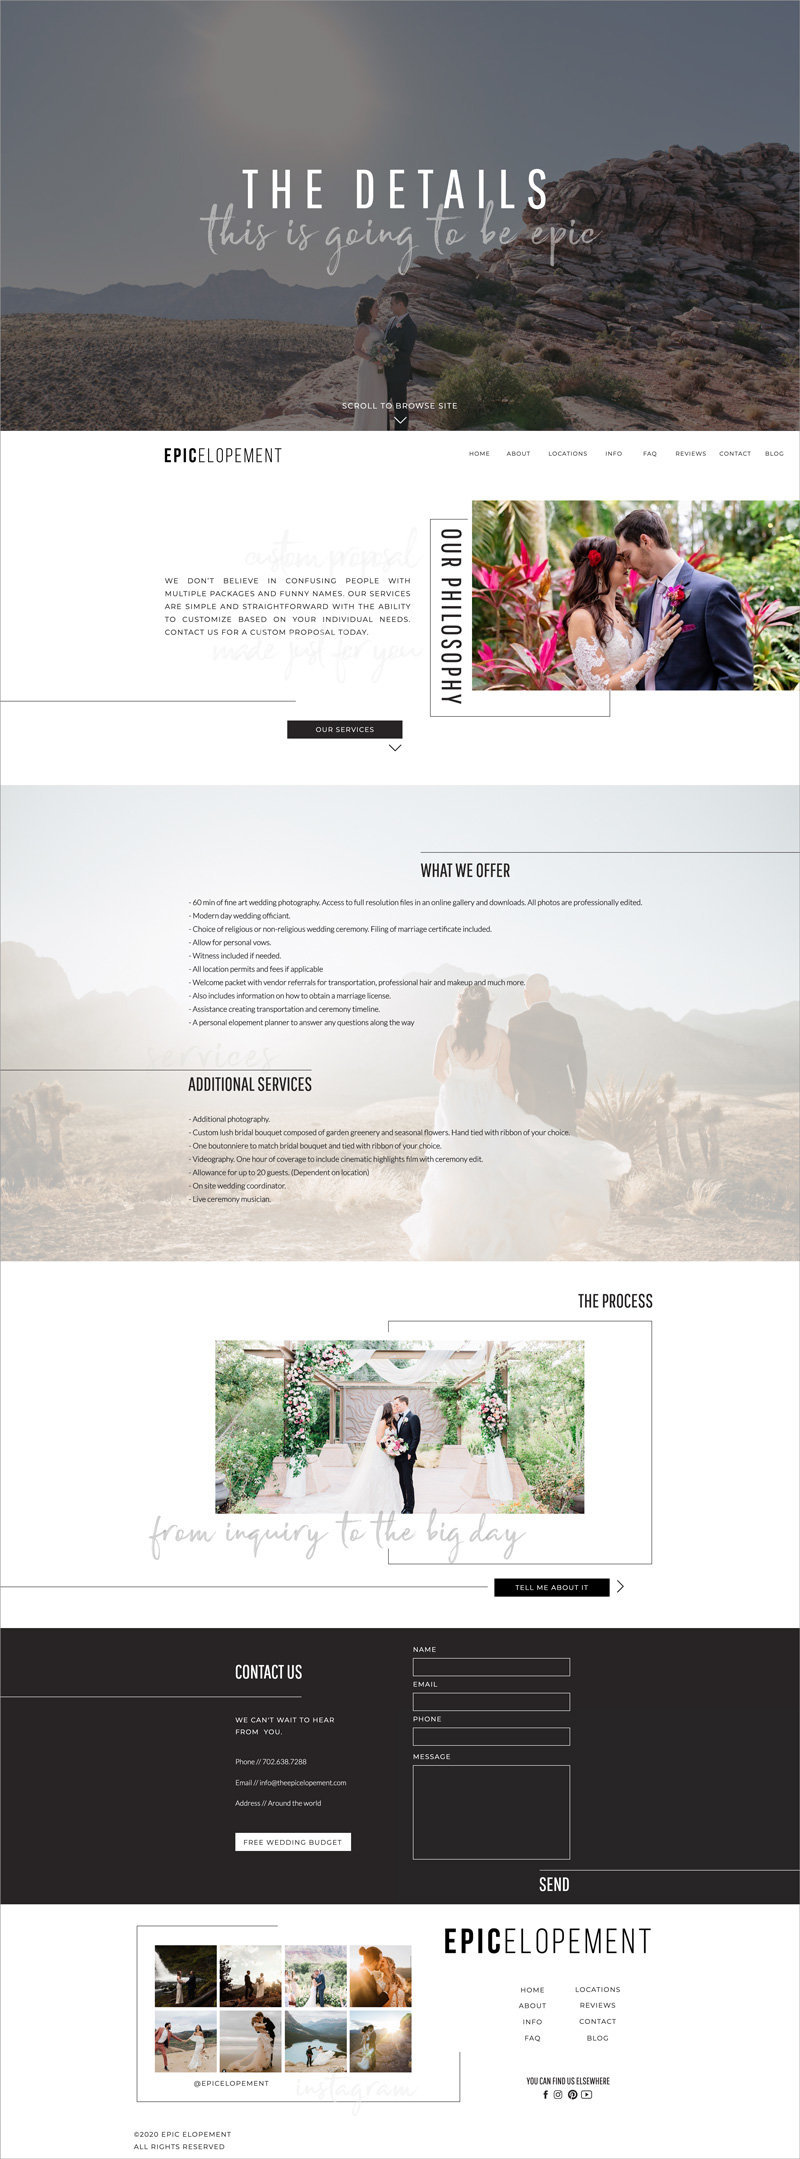 epic-elopement-details